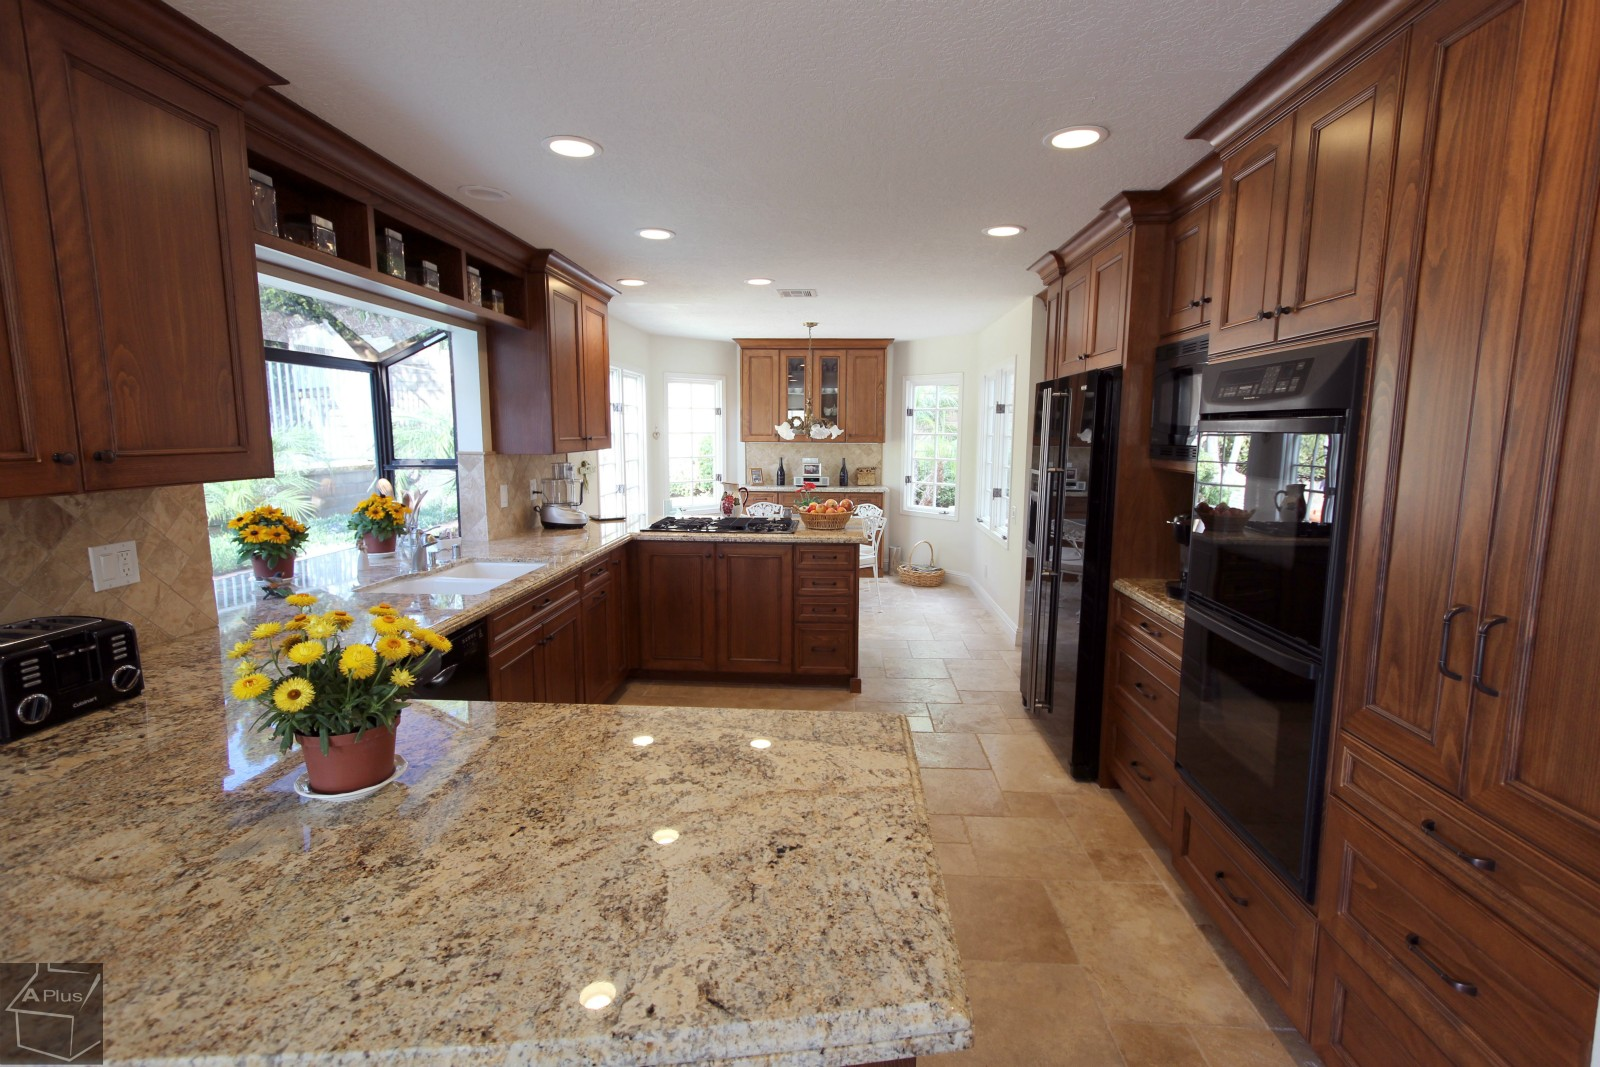 Kitchen And Bathroom Remodel In City Of Mission Viejo APlus - Mission viejo bathroom remodeling